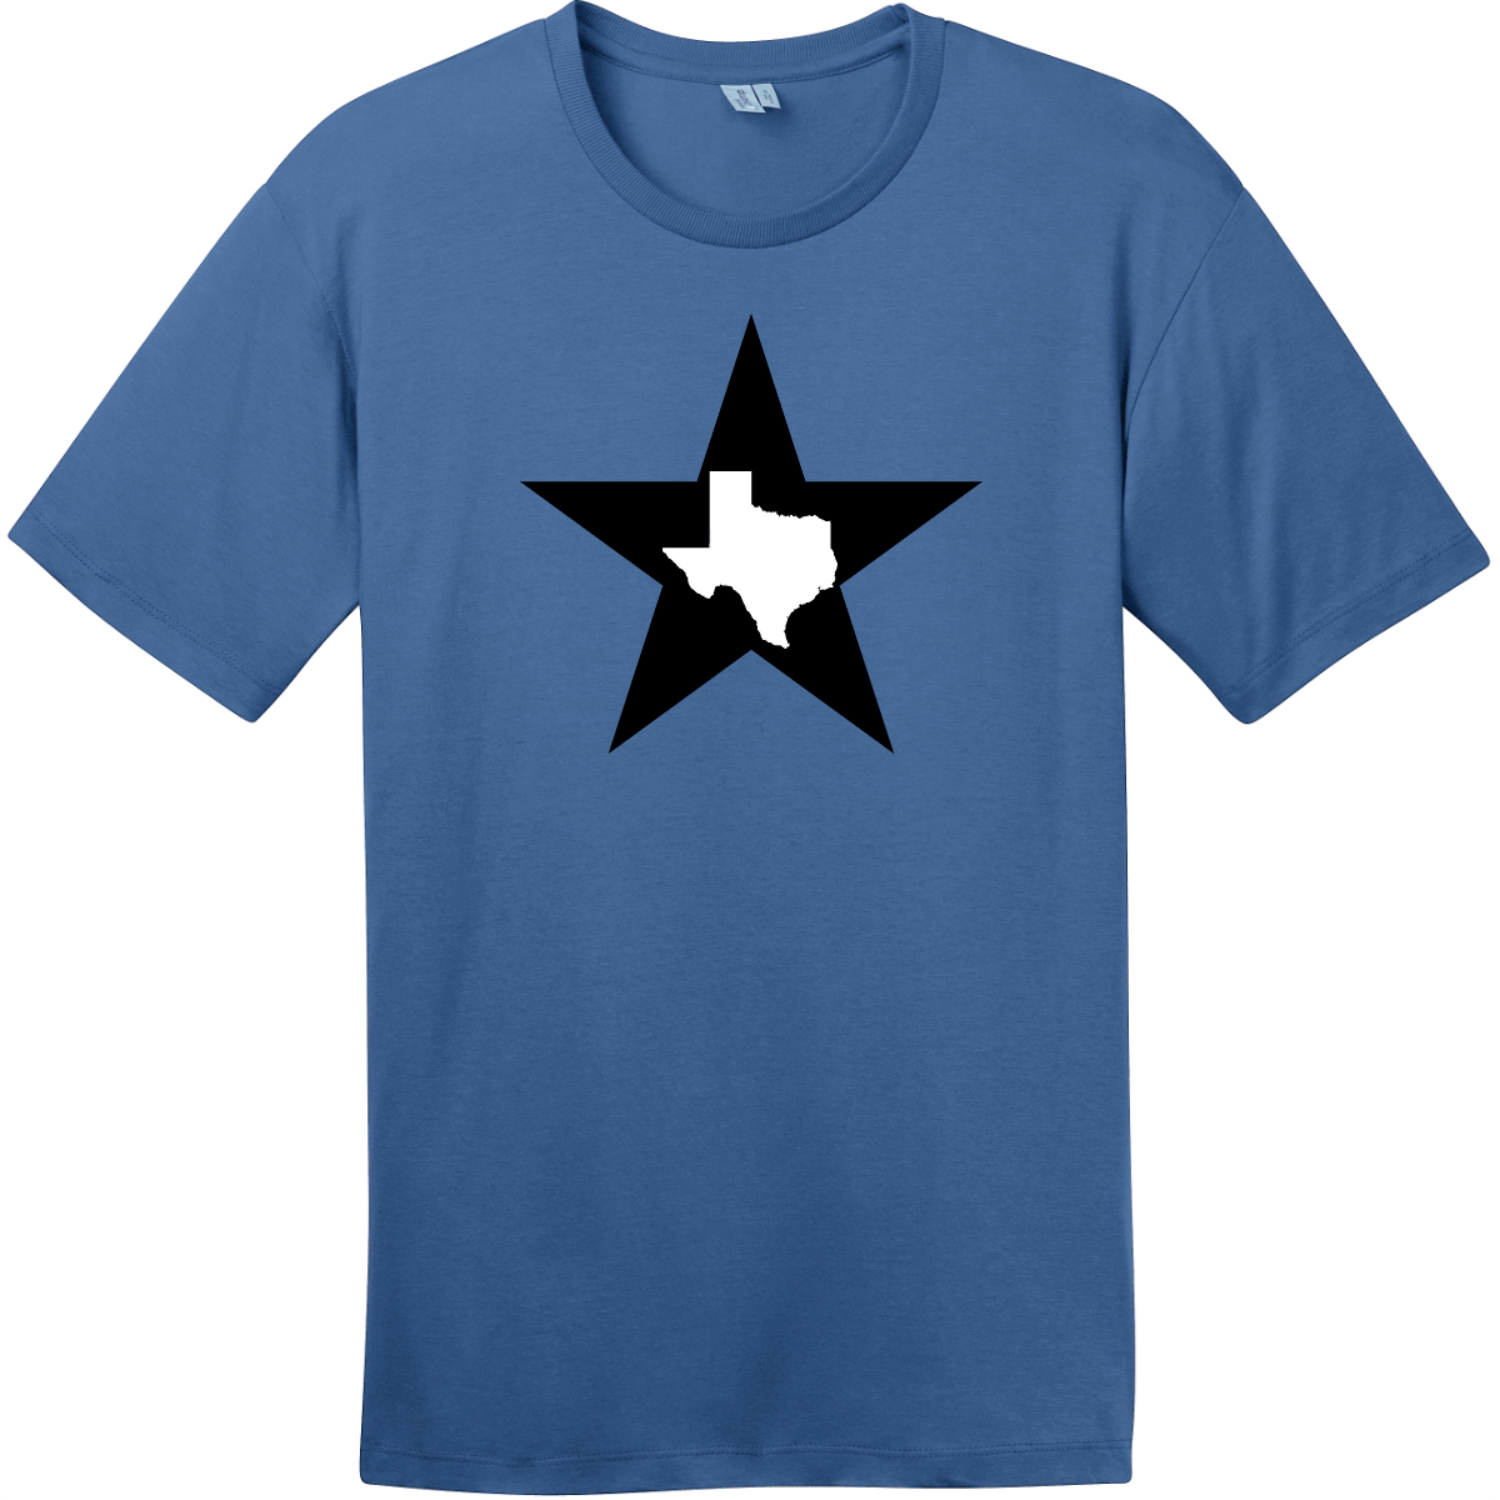 Texas Lone Star State T-Shirt Maritime Blue District Perfect Weight Tee DT104